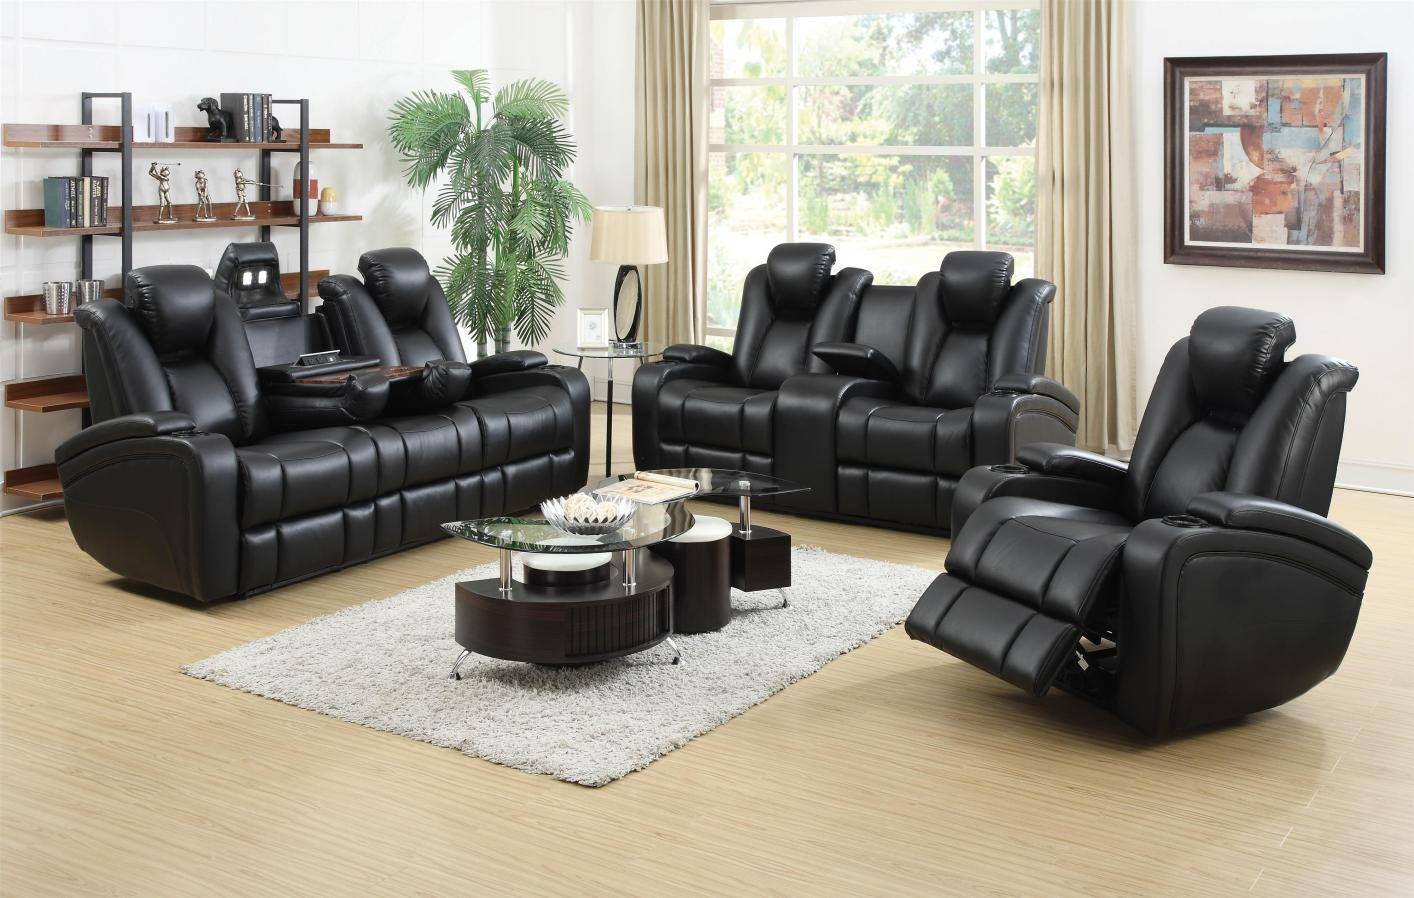 Black Leather Power Reclining Sofa And Loveseat Set - Steal-A-Sofa with Black Leather Sofas and Loveseat Sets (Image 4 of 15)